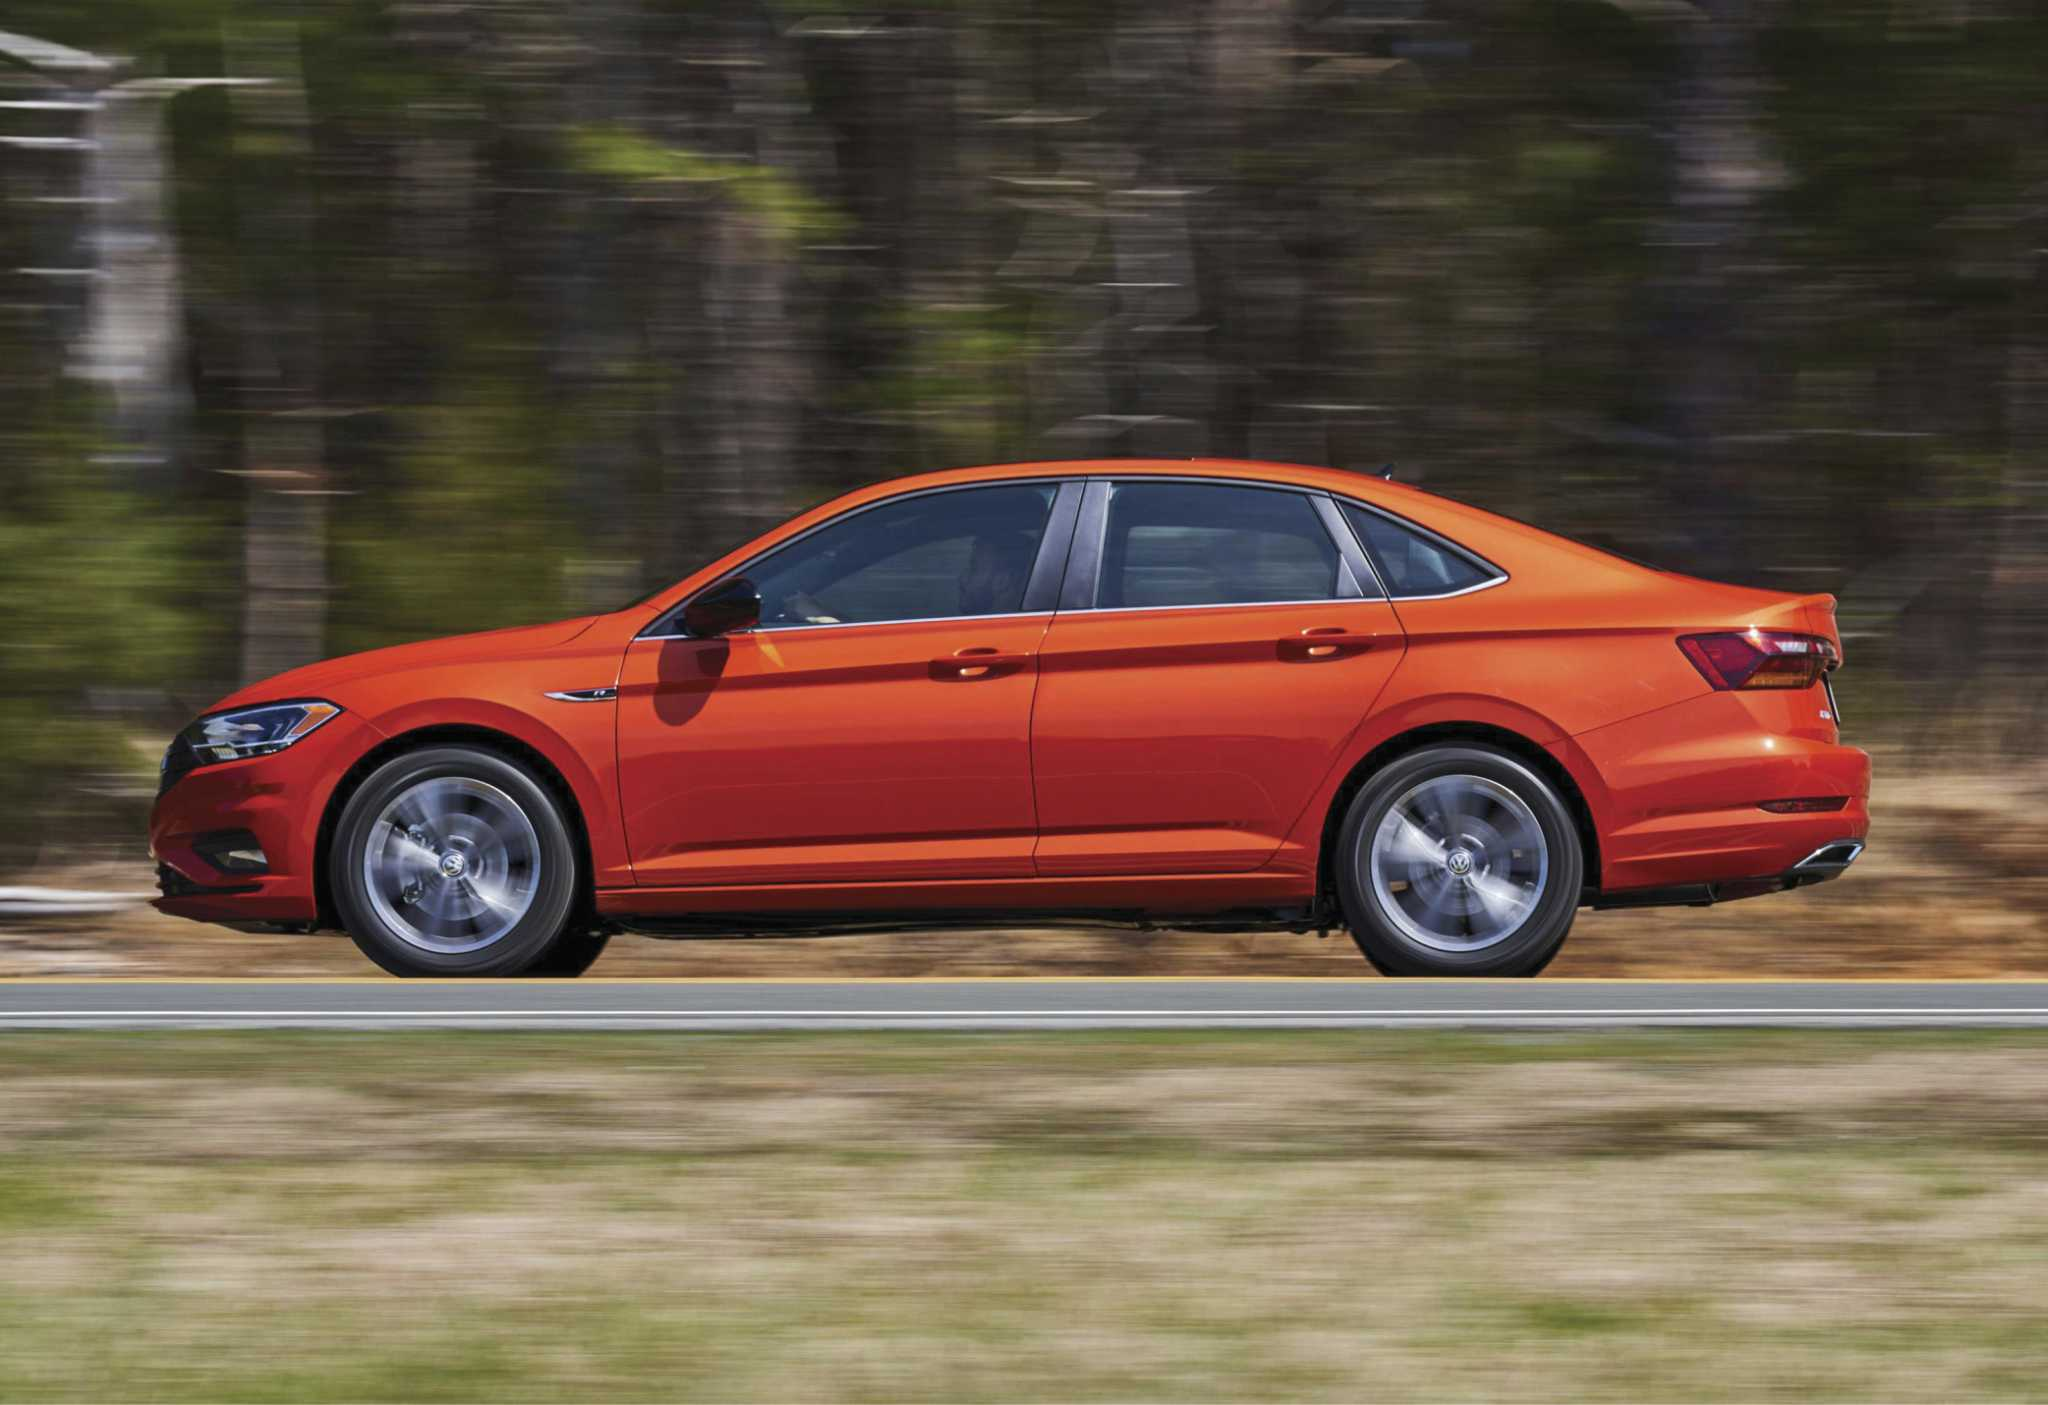 VW's revamped 2019 Jetta R-Line delivers bang for the buck